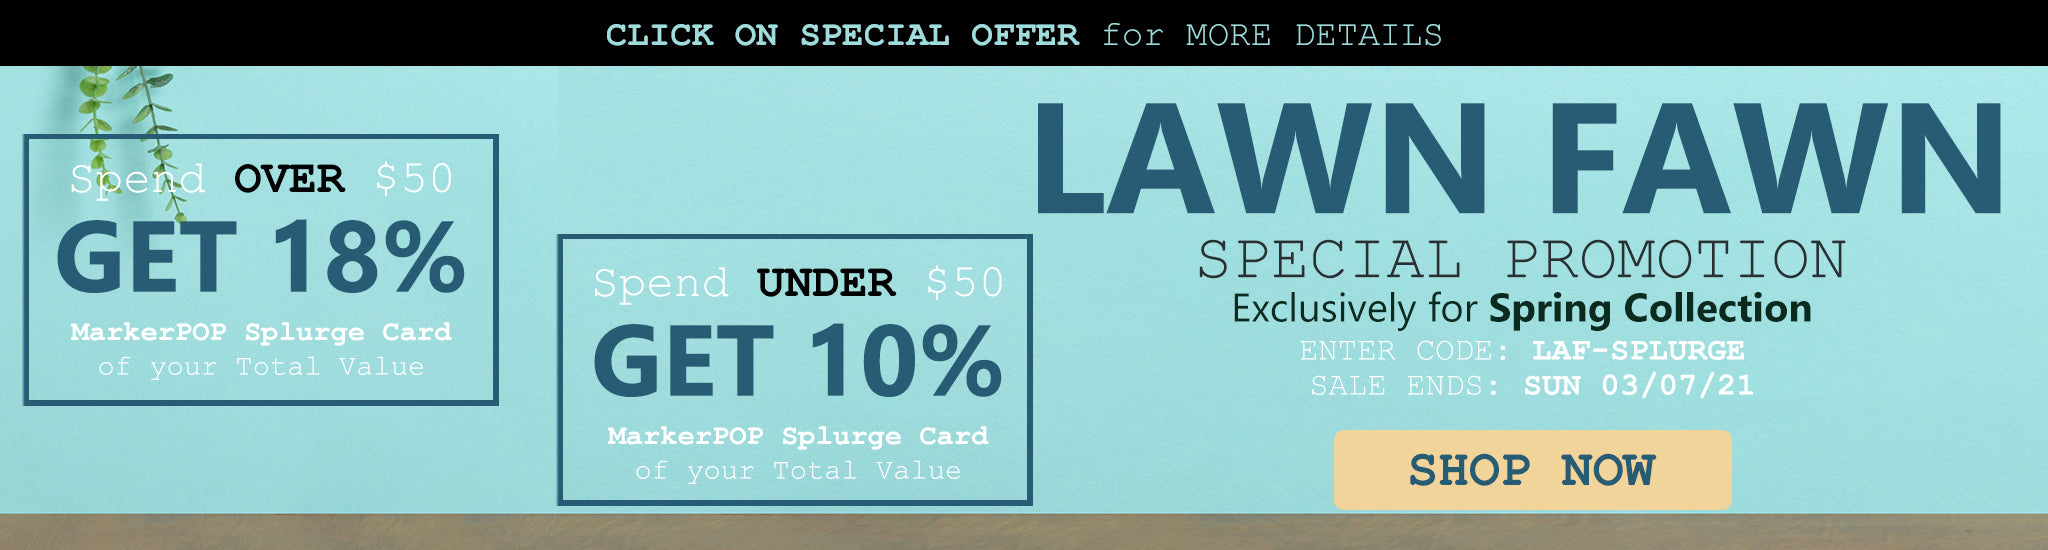 Lawn Fawn Spring 2021 Special Promotion